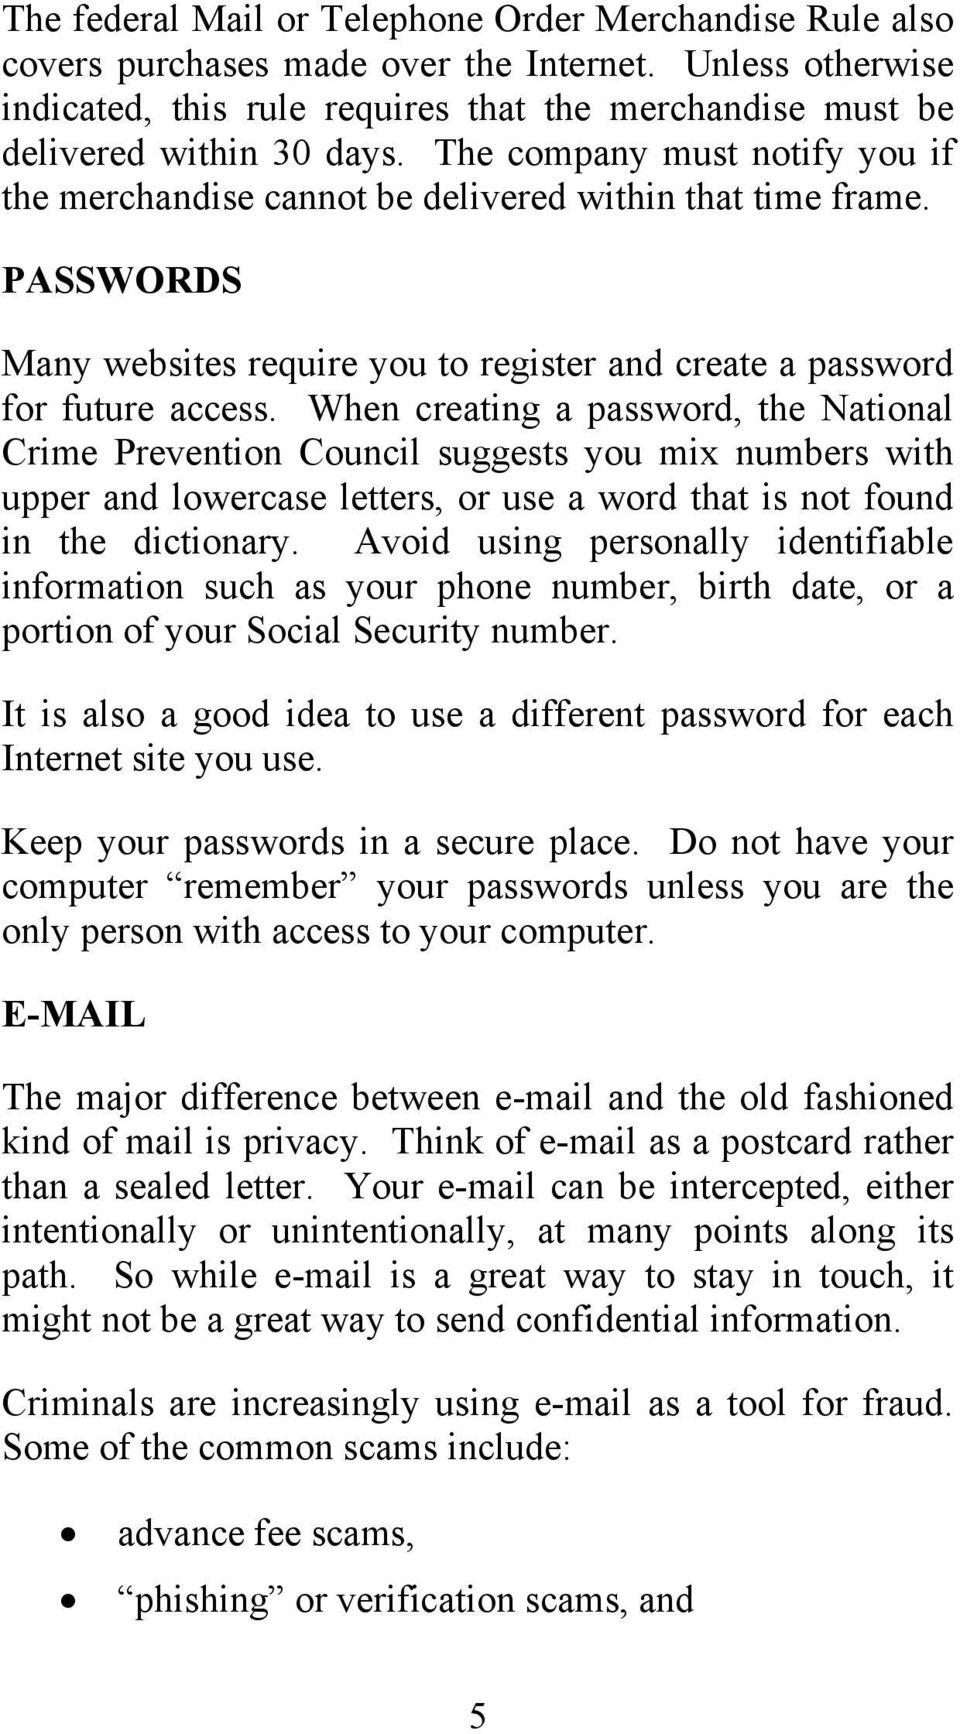 When creating a password, the National Crime Prevention Council suggests you mix numbers with upper and lowercase letters, or use a word that is not found in the dictionary.